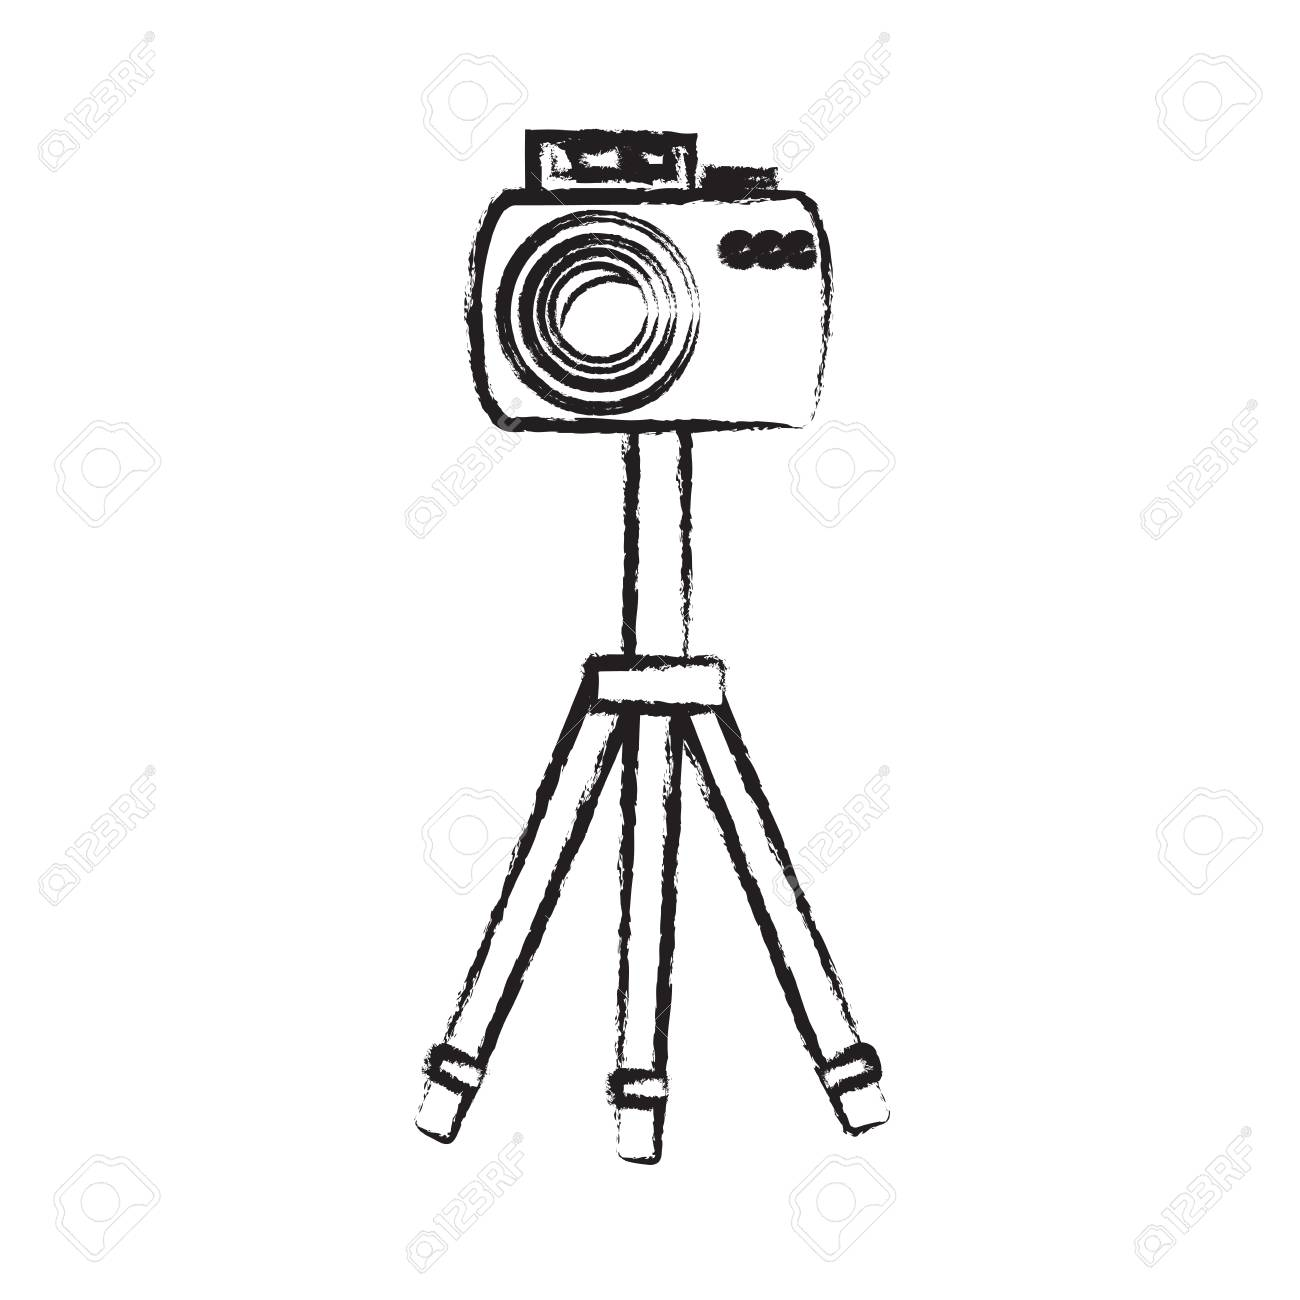 1300x1300 Sketch Of Photographic Camera On The Tripod Icon Over White